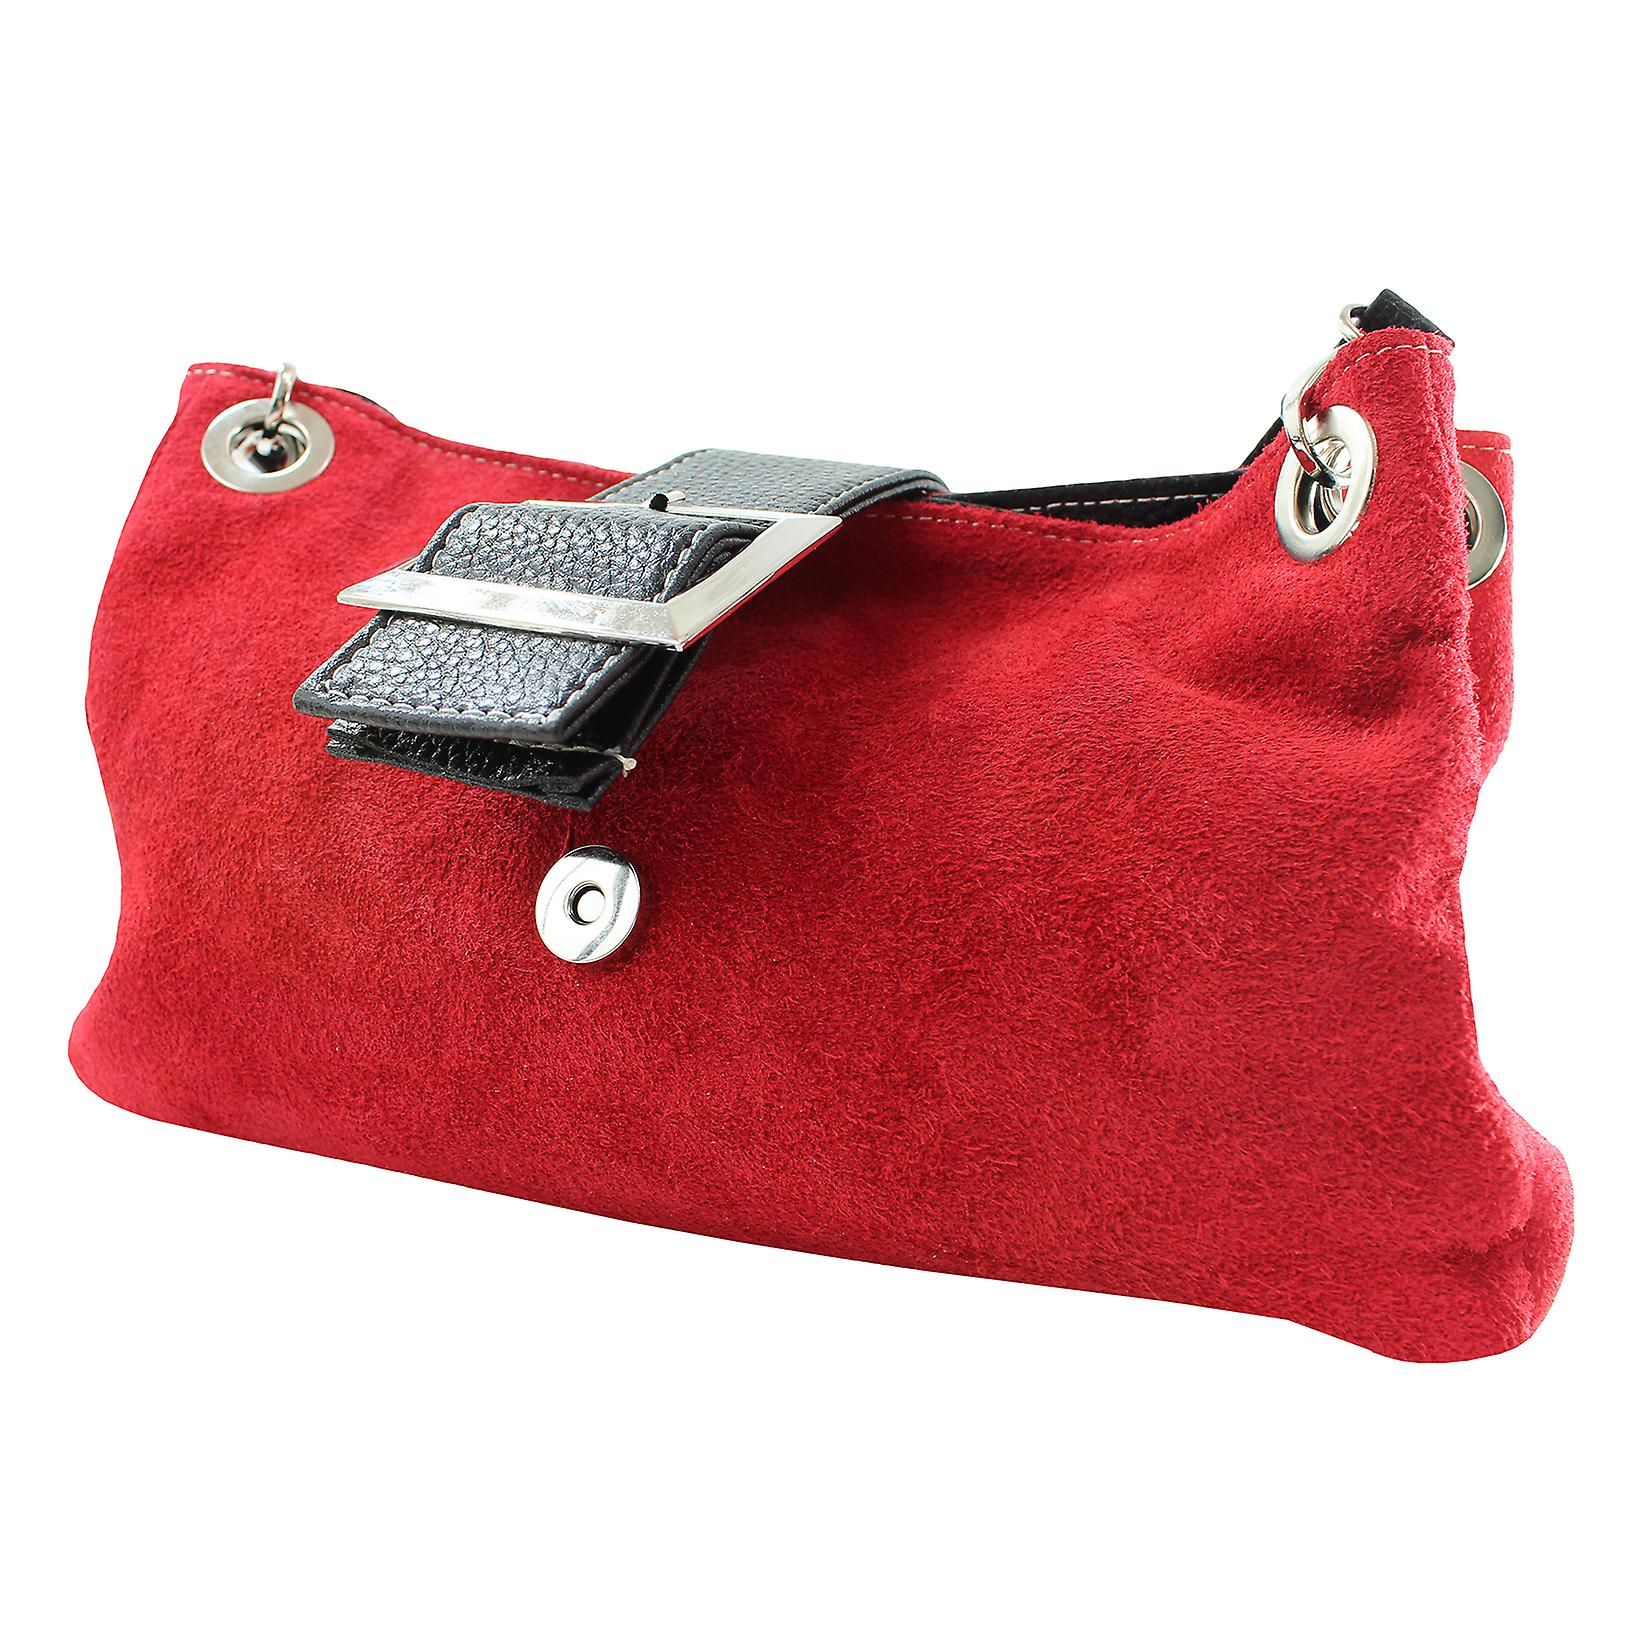 CTM ladies suede leather clutch bag 100% made in Italy